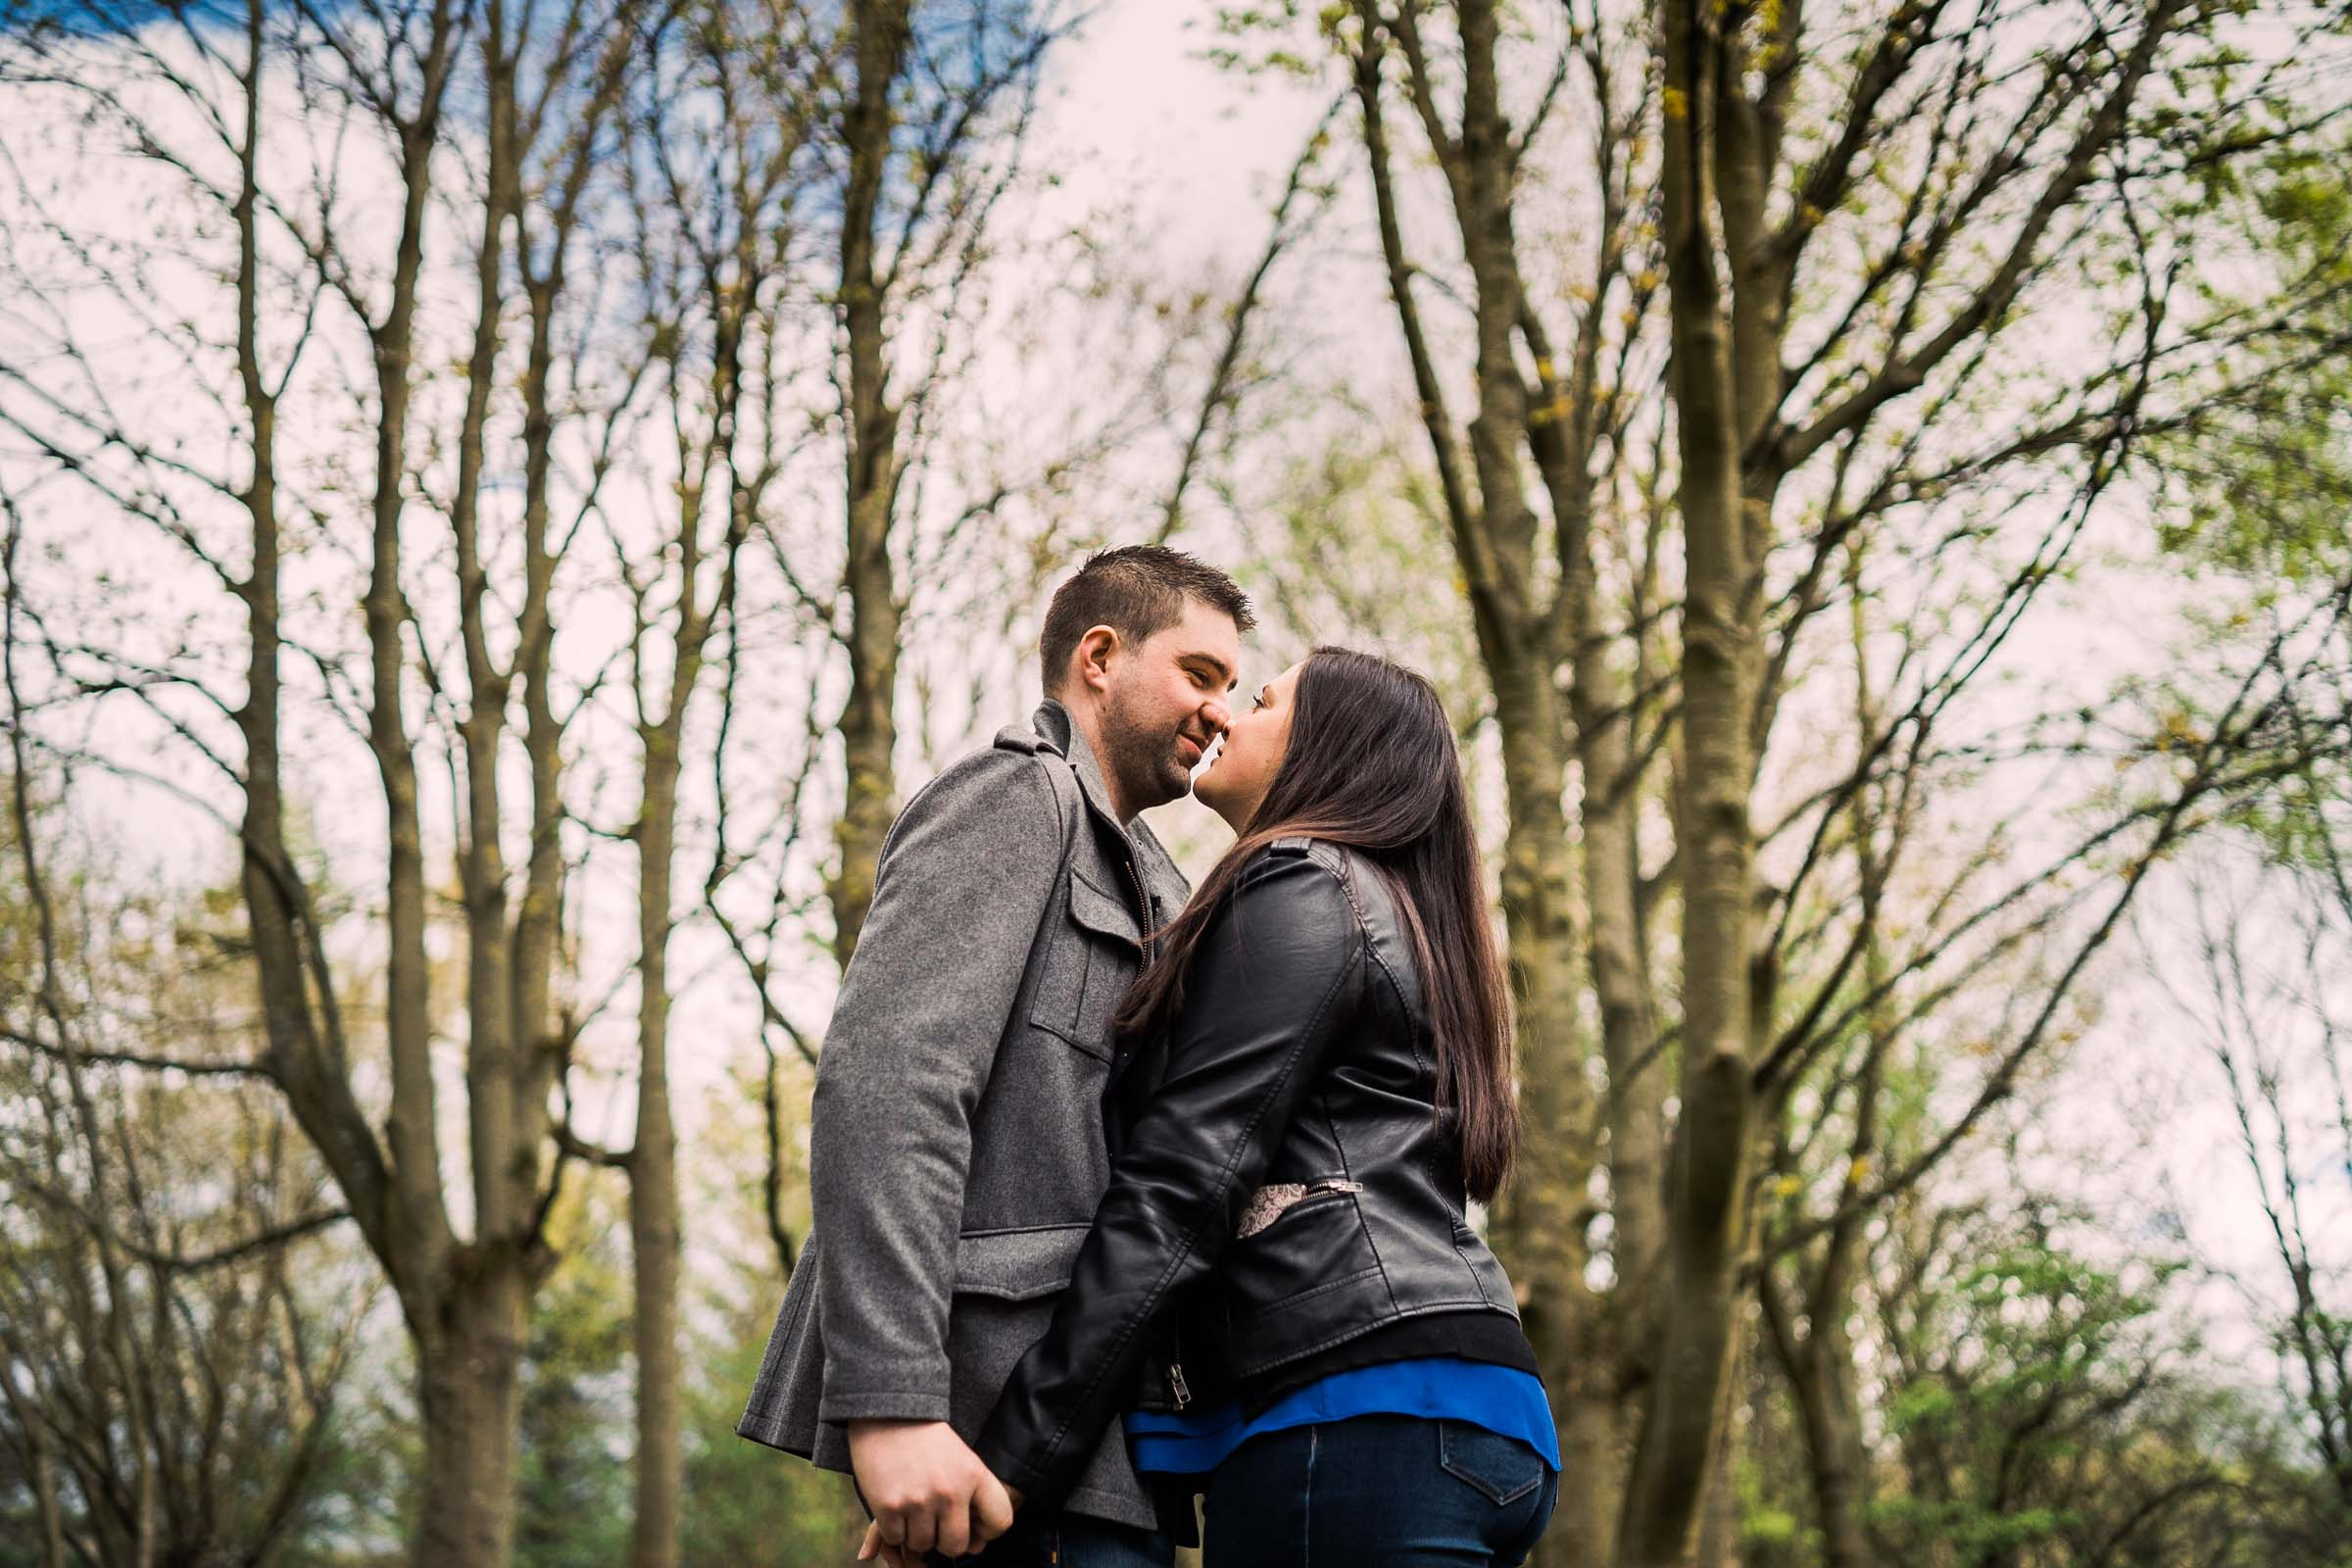 scottish-engagement-photography-elopement-dearlyphotography (45 of 45).jpg